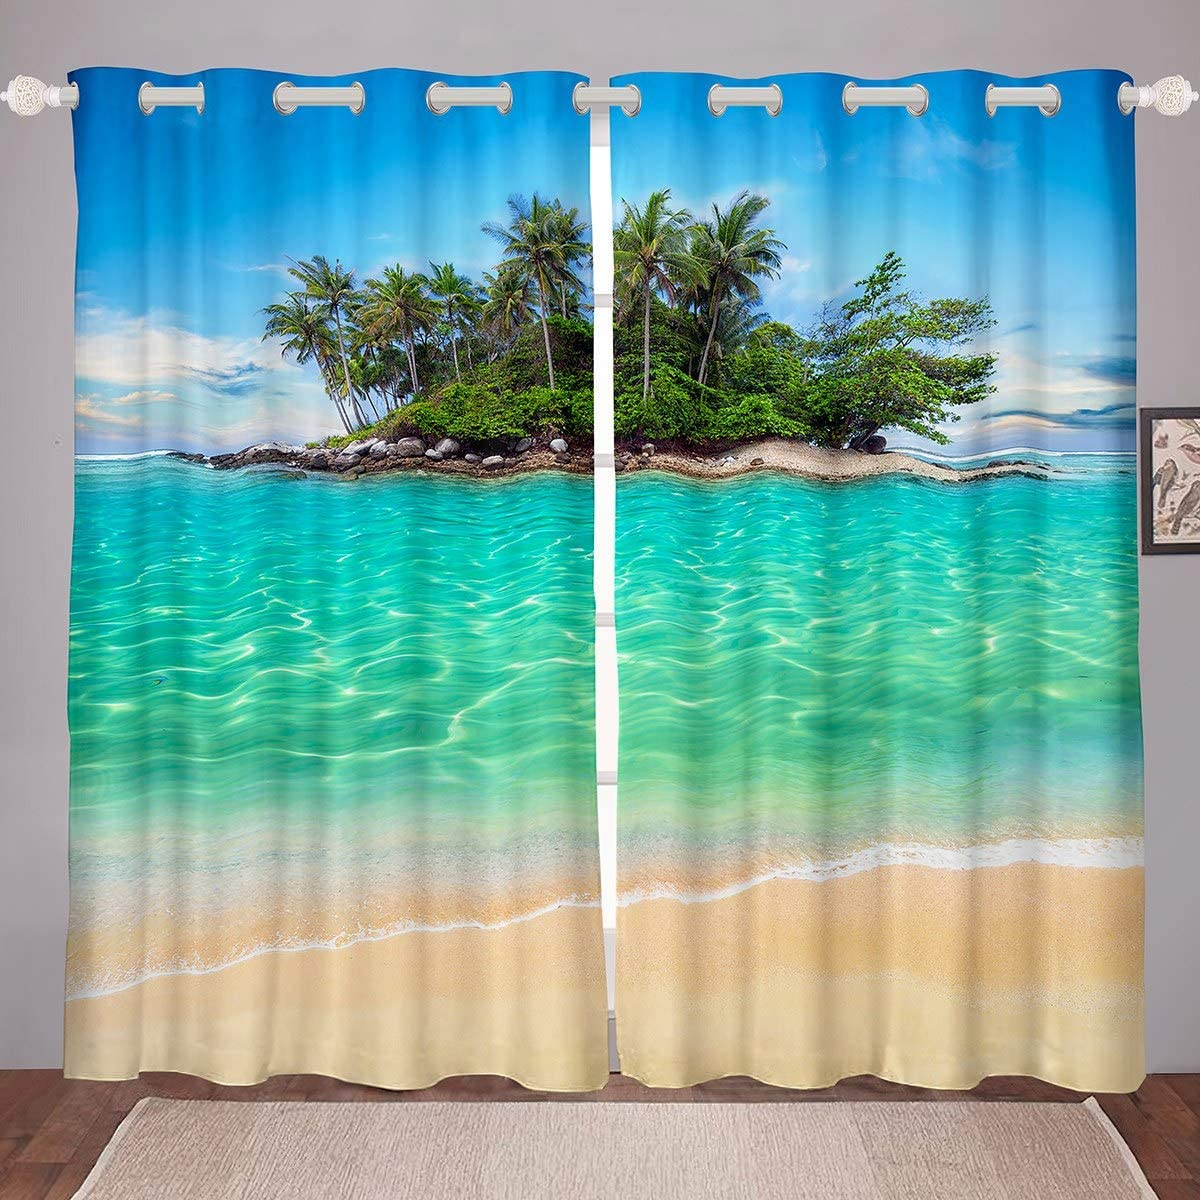 Feelyou Tropical Fish Window Drapes Marine Life Ocean Theme Curtain for Kids Boys Girls Underwater Animal Curtains for Bedroom Sealife Blackout Curtain Darkening Thermal Panel Curtains 104X 63